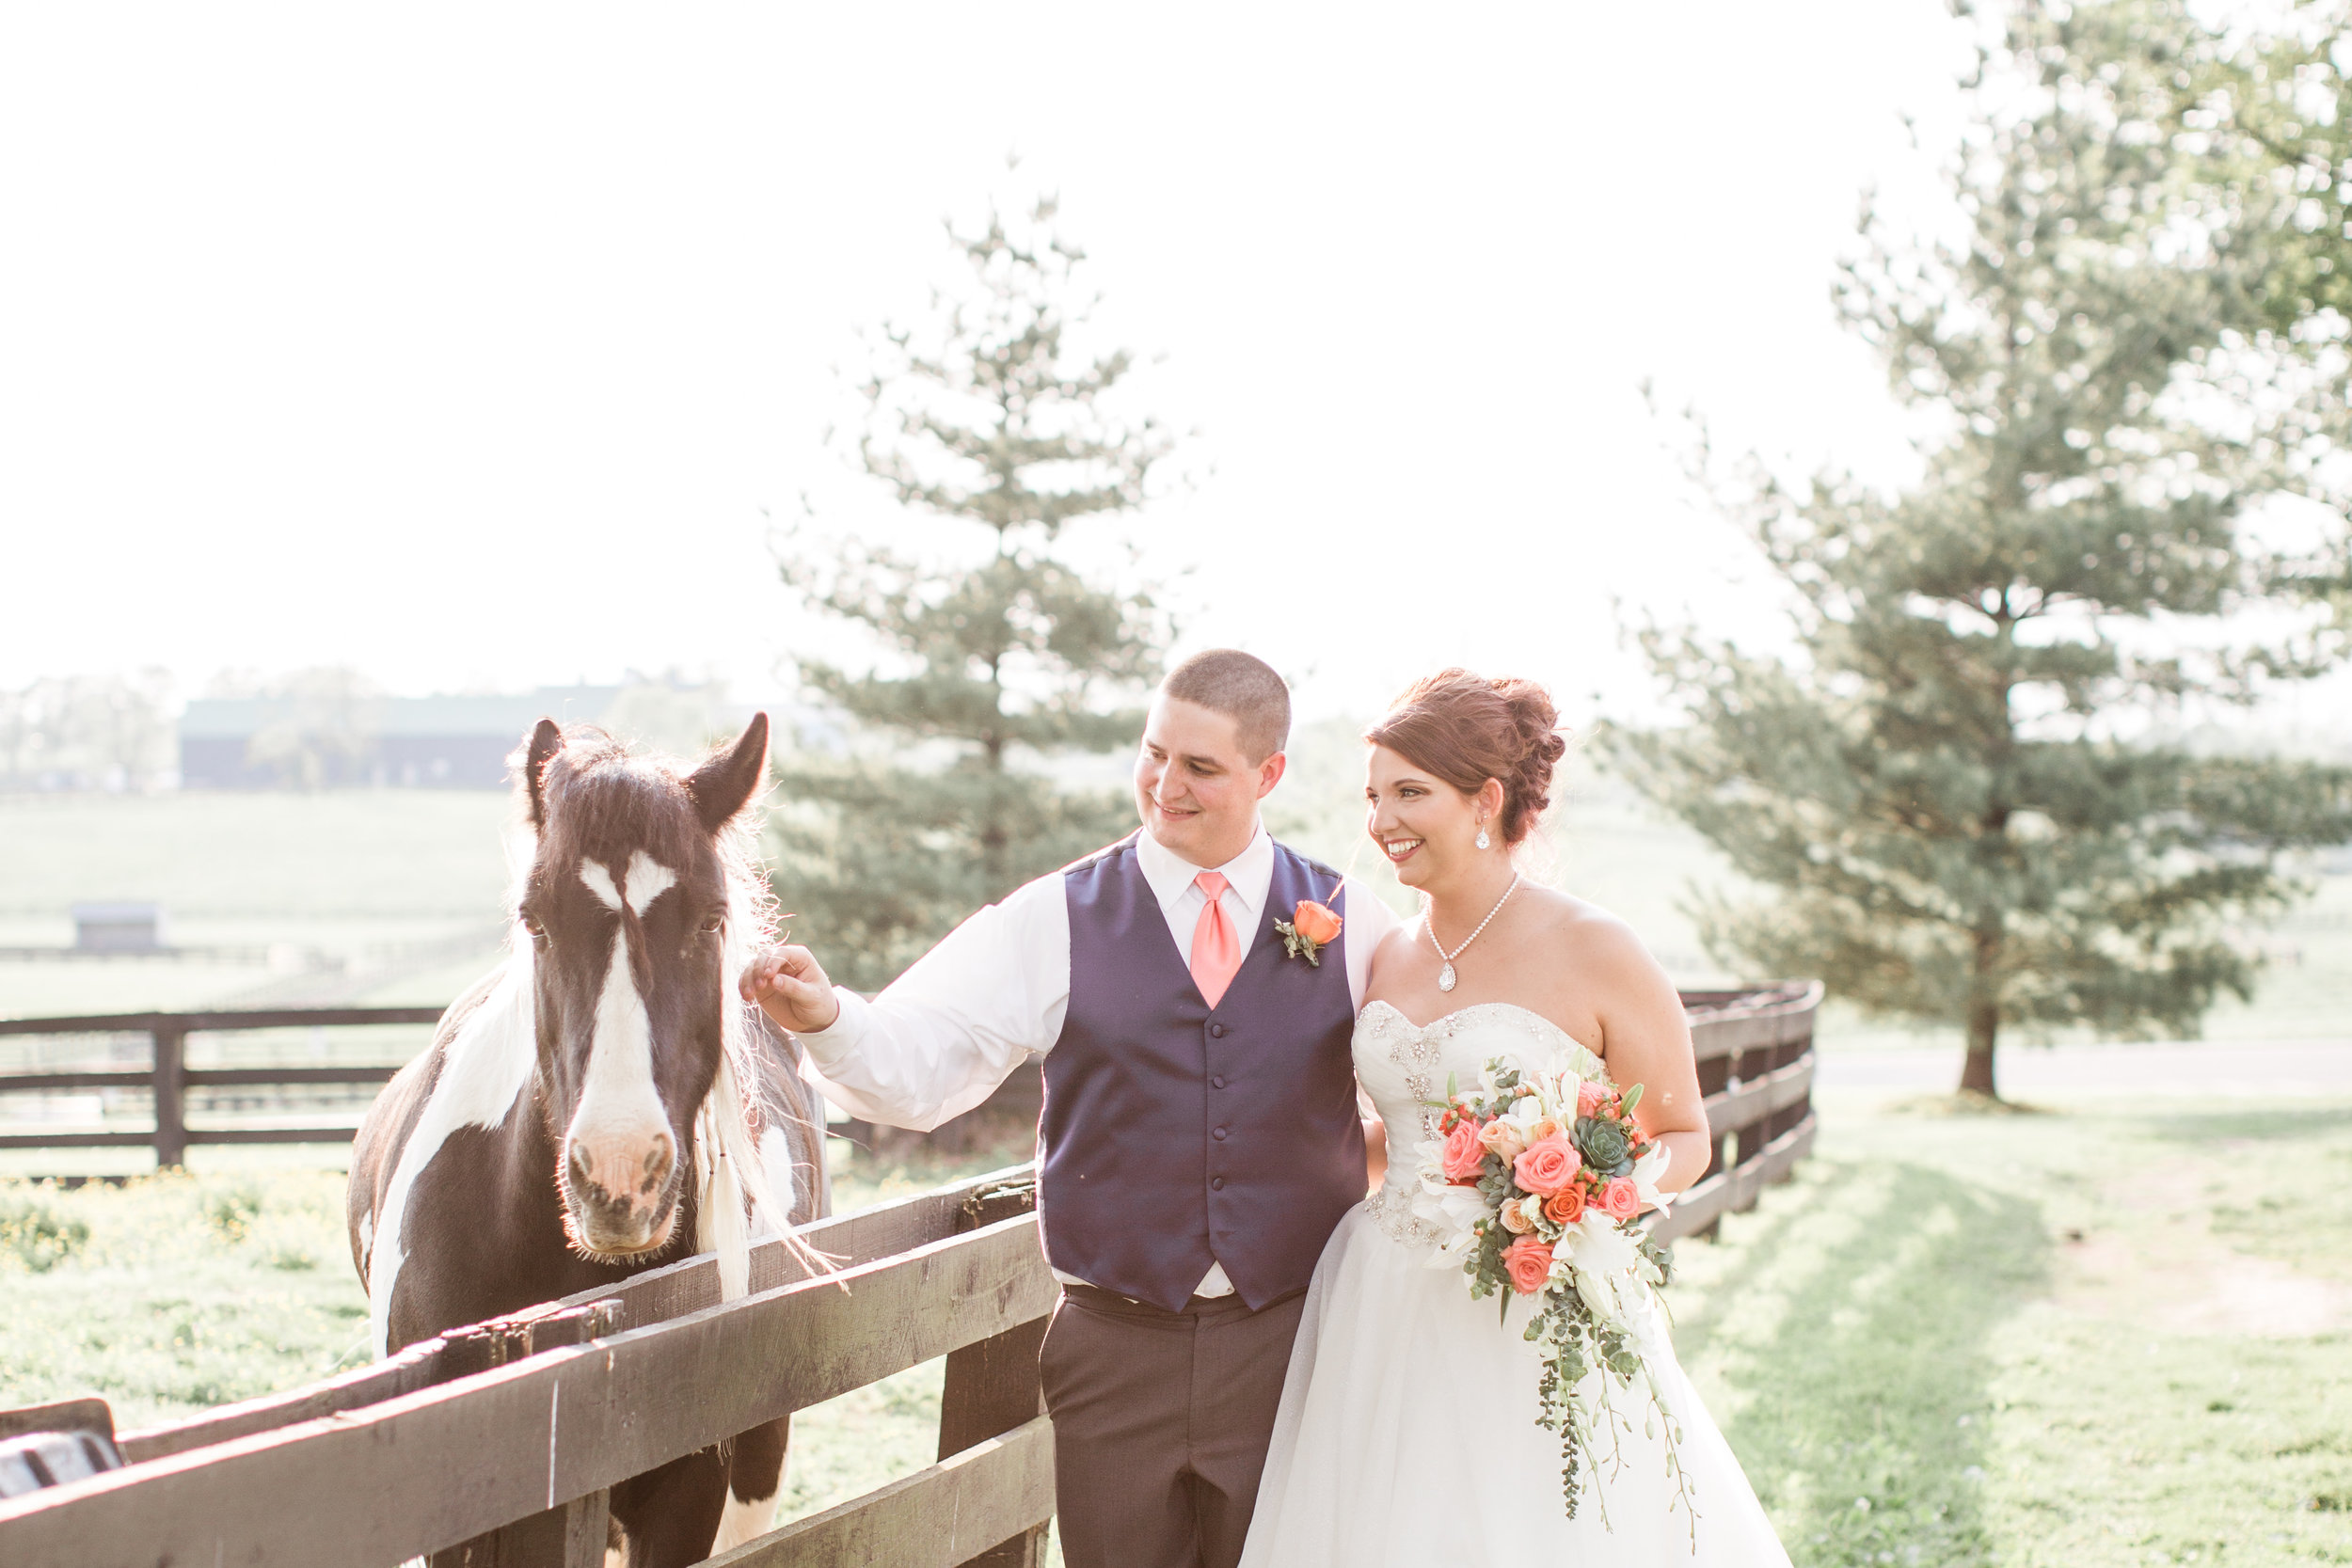 """Calling all horse fans, the Sears wedding is about to make your jaw drop!! Blake and Sarah got married May 12th at The Big Barn located in the Kentucky Horse Park. These best friends turned high school sweethearts met in Calculus and their love story is anything but boring.    Every girl dreams about getting engaged at Disney World and that's exactly what Sarah got! In March 2017, they vacationed to Orlando, Fl. and got tickets to Disney. Sarah wanted their picture together at the castle before it got dark but Blake already had a plan. He had an employee come over to capture the moment as he handed her golden Mickey ears that said, """"Will you marry me?""""    Their wedding day came together flawlessly in just two short months! The sun was out and shining early on May 12th and the horses could be seen running across the fields. Kala's Stage was hard at work glamming up the beautiful bride to be; Sarah's updo couldn't have been more perfect.    Navy, Coral, and gold swatches filled the barn at the Sears wedding. The tables were decorated with centerpieces from IKEA and Michaels. The sun caught the sparkle tulle and beaded bodice of Sarah's dress which made the whole night bright. They danced the night away in the barn surrounded by their friends and families."""